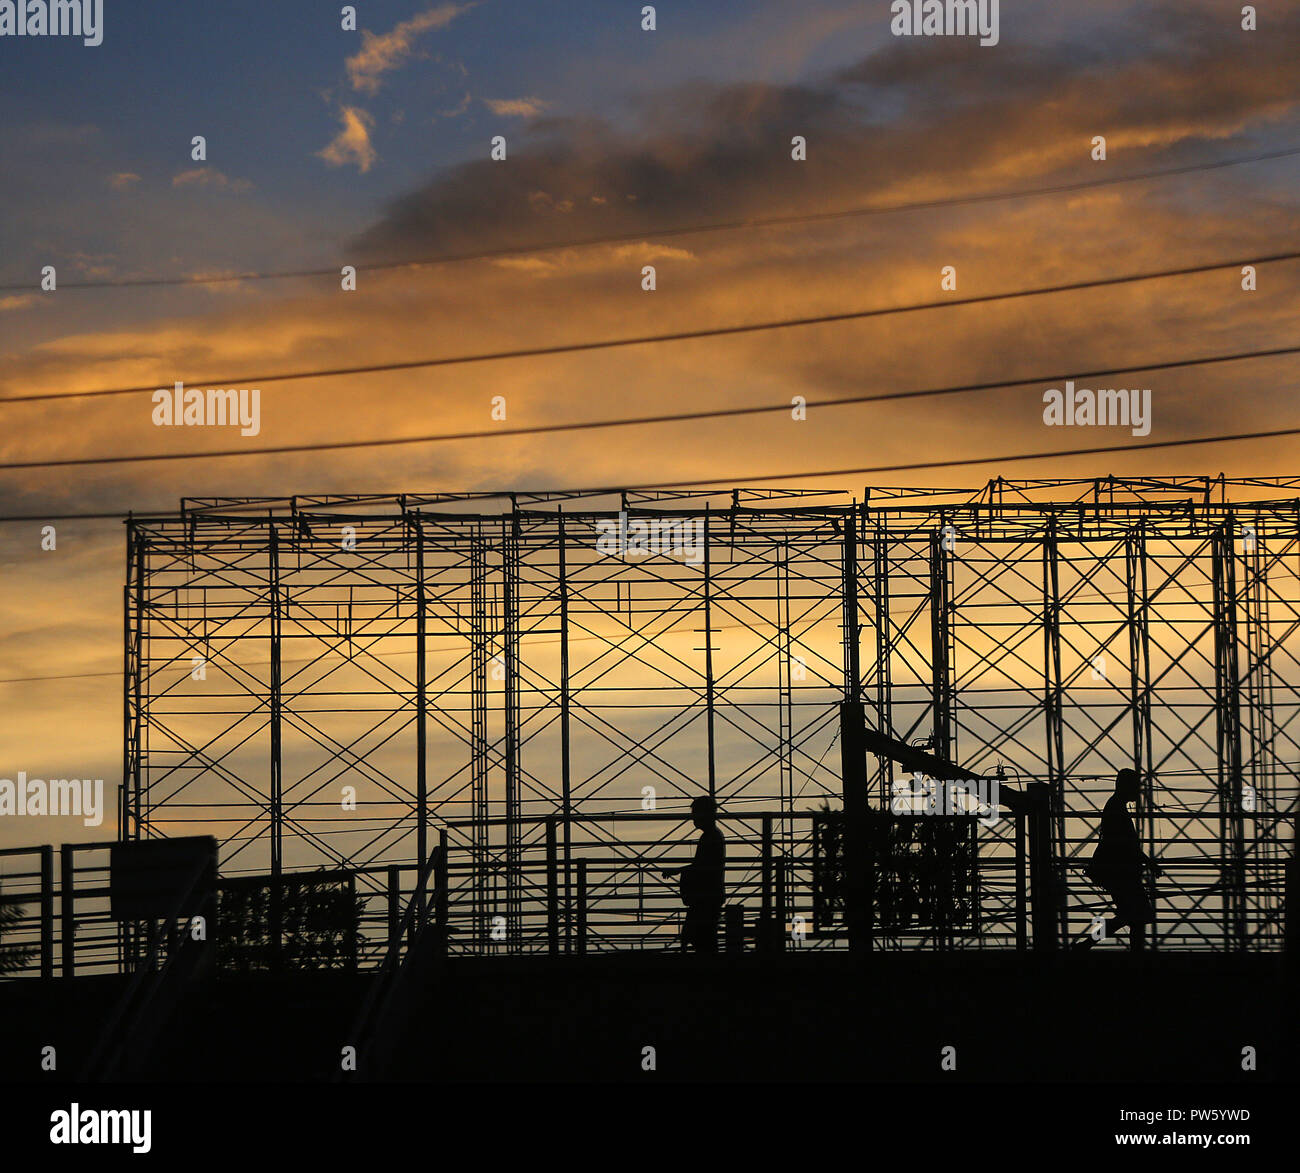 Pasay City, Philippines. 13th Oct, 2018. People are silhouetted against the sky during sunrise in Pasay City, Philippines, Oct. 13, 2018. Credit: Rouelle Umali/Xinhua/Alamy Live News - Stock Image